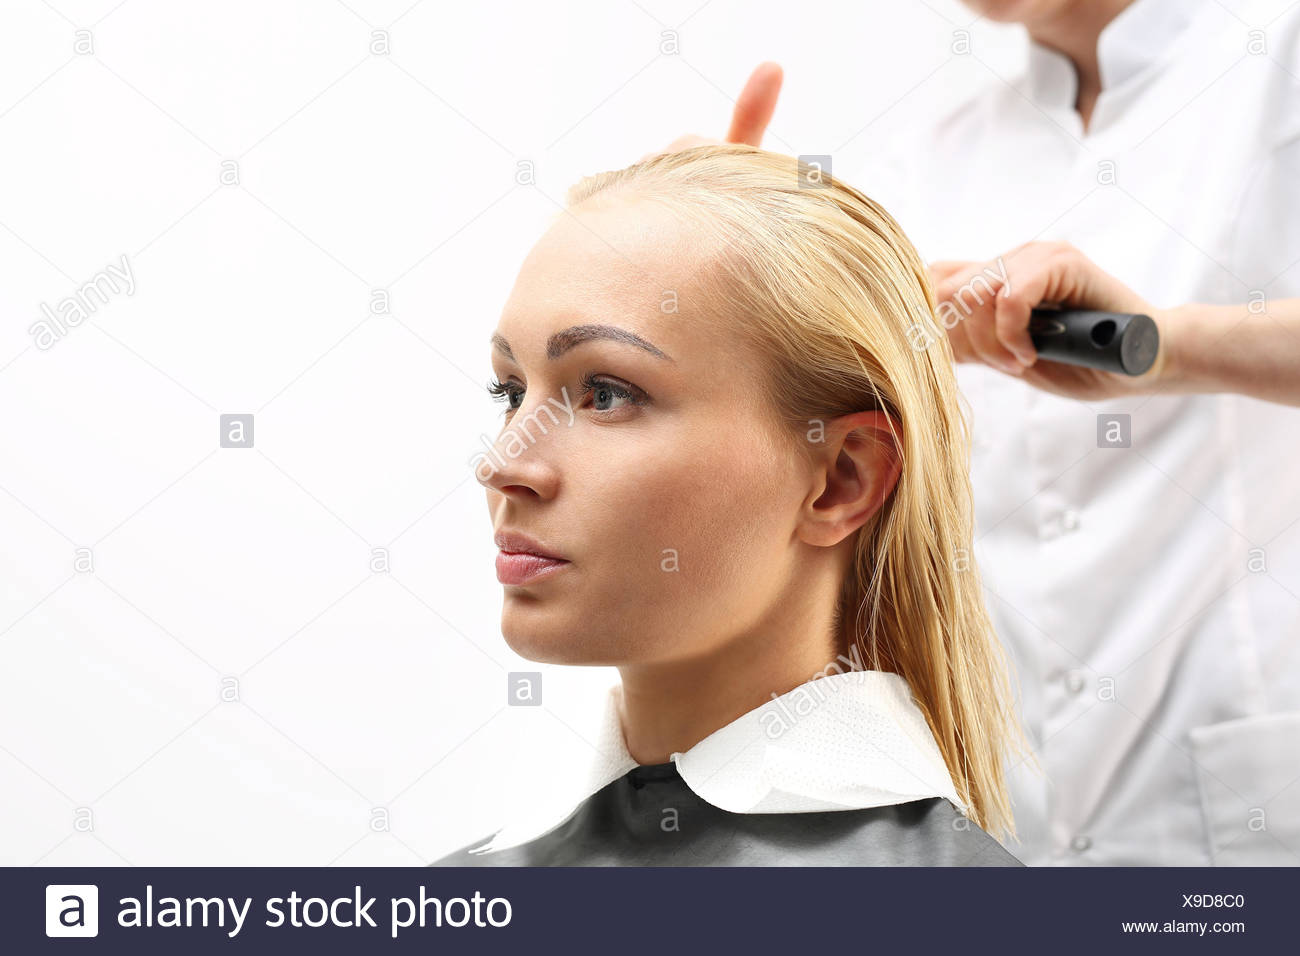 dry your hair on a round brush - Stock Image